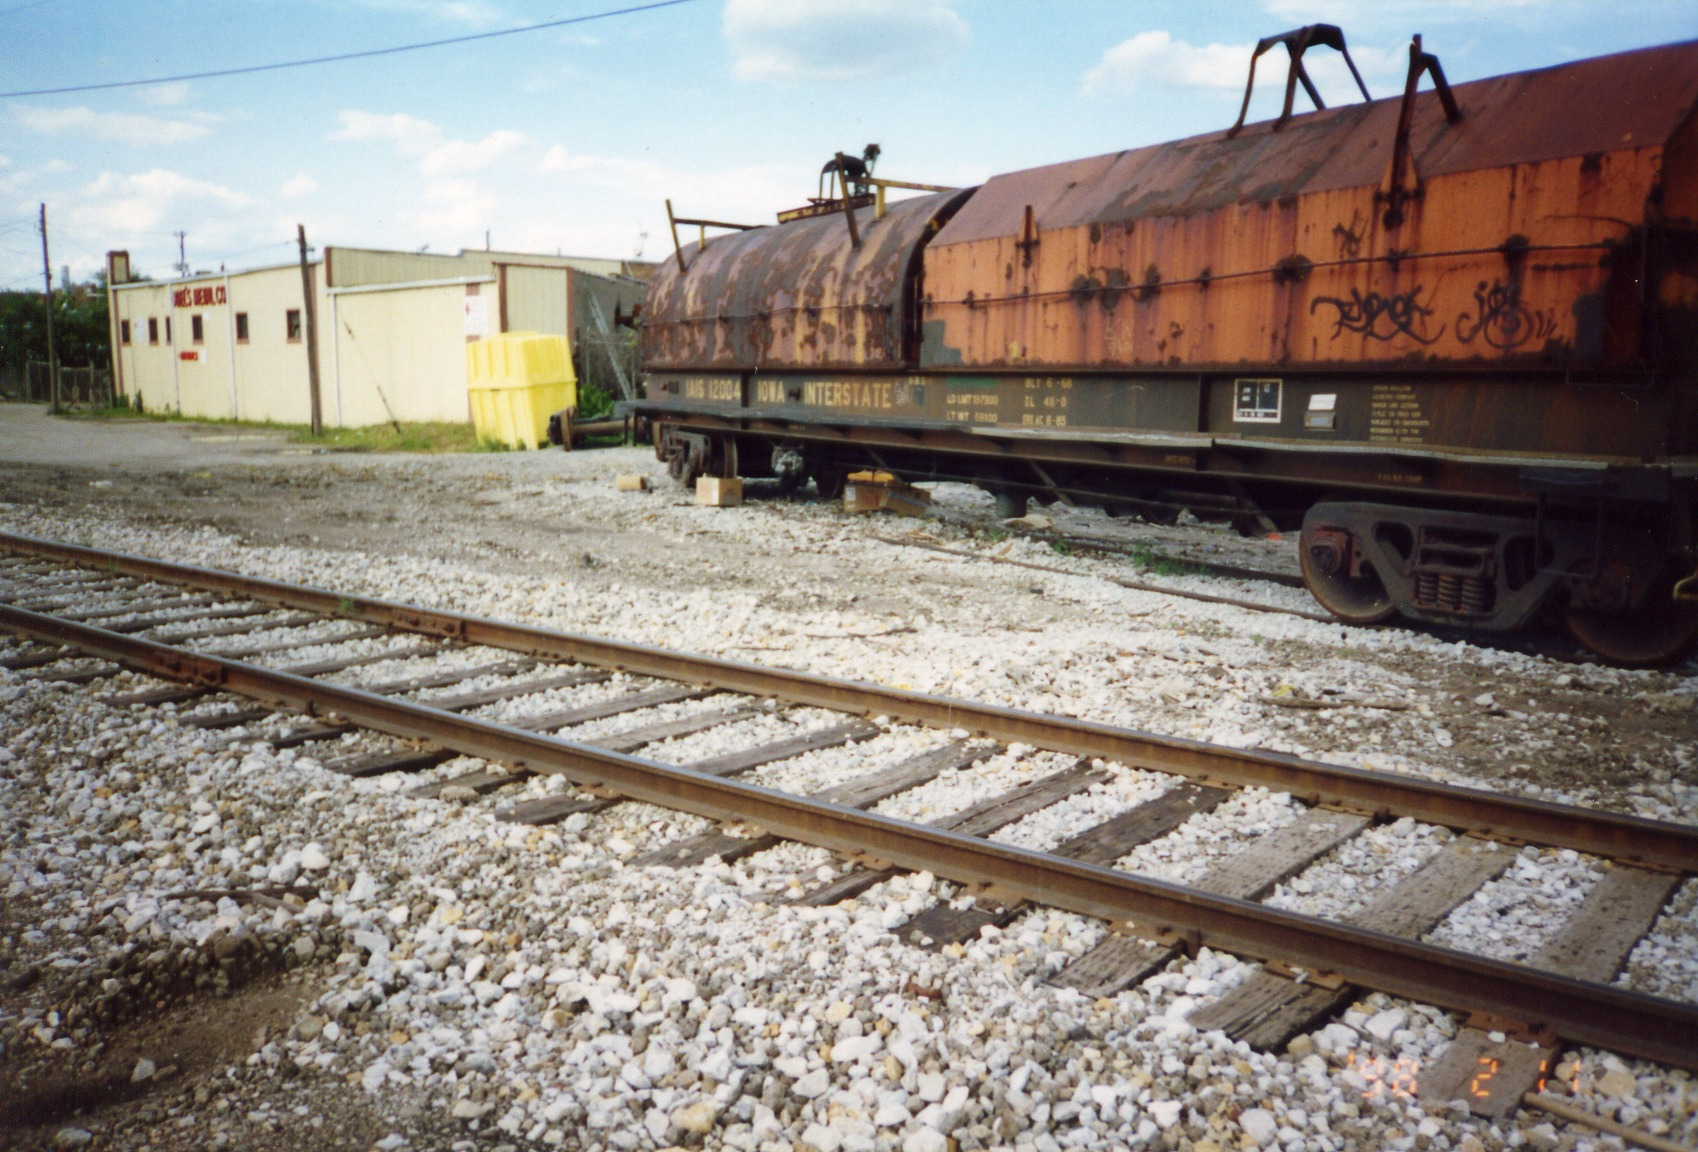 IAIS 12004 awaits scrapping at Del's Metals, Rock Island, Aug. 2004